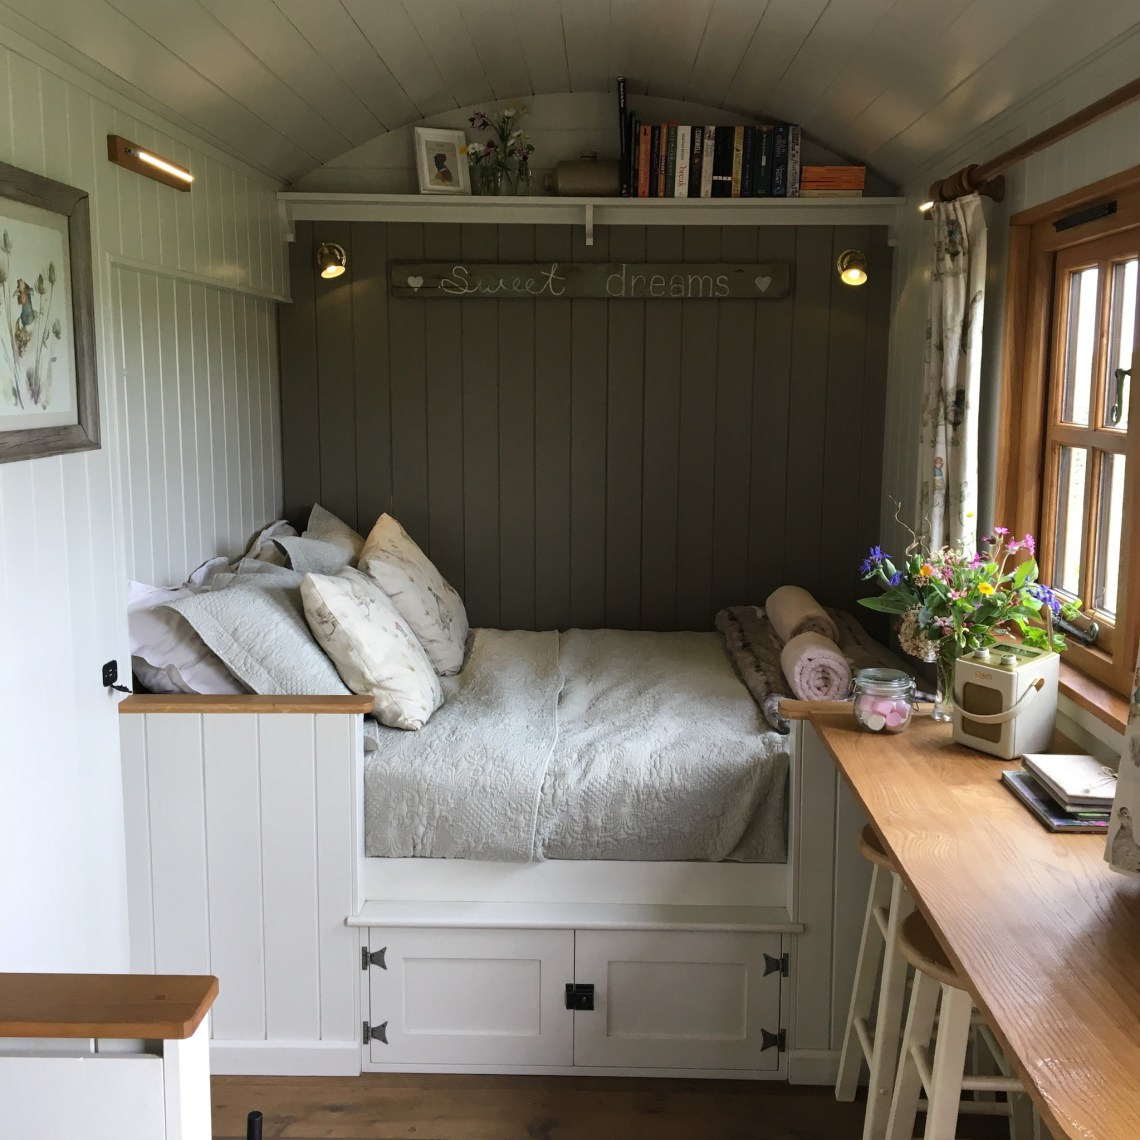 The internal layout of the pleasant pheasant shepherd hut showing a double bed made up with light green bedding and a small breakfast bar to the side